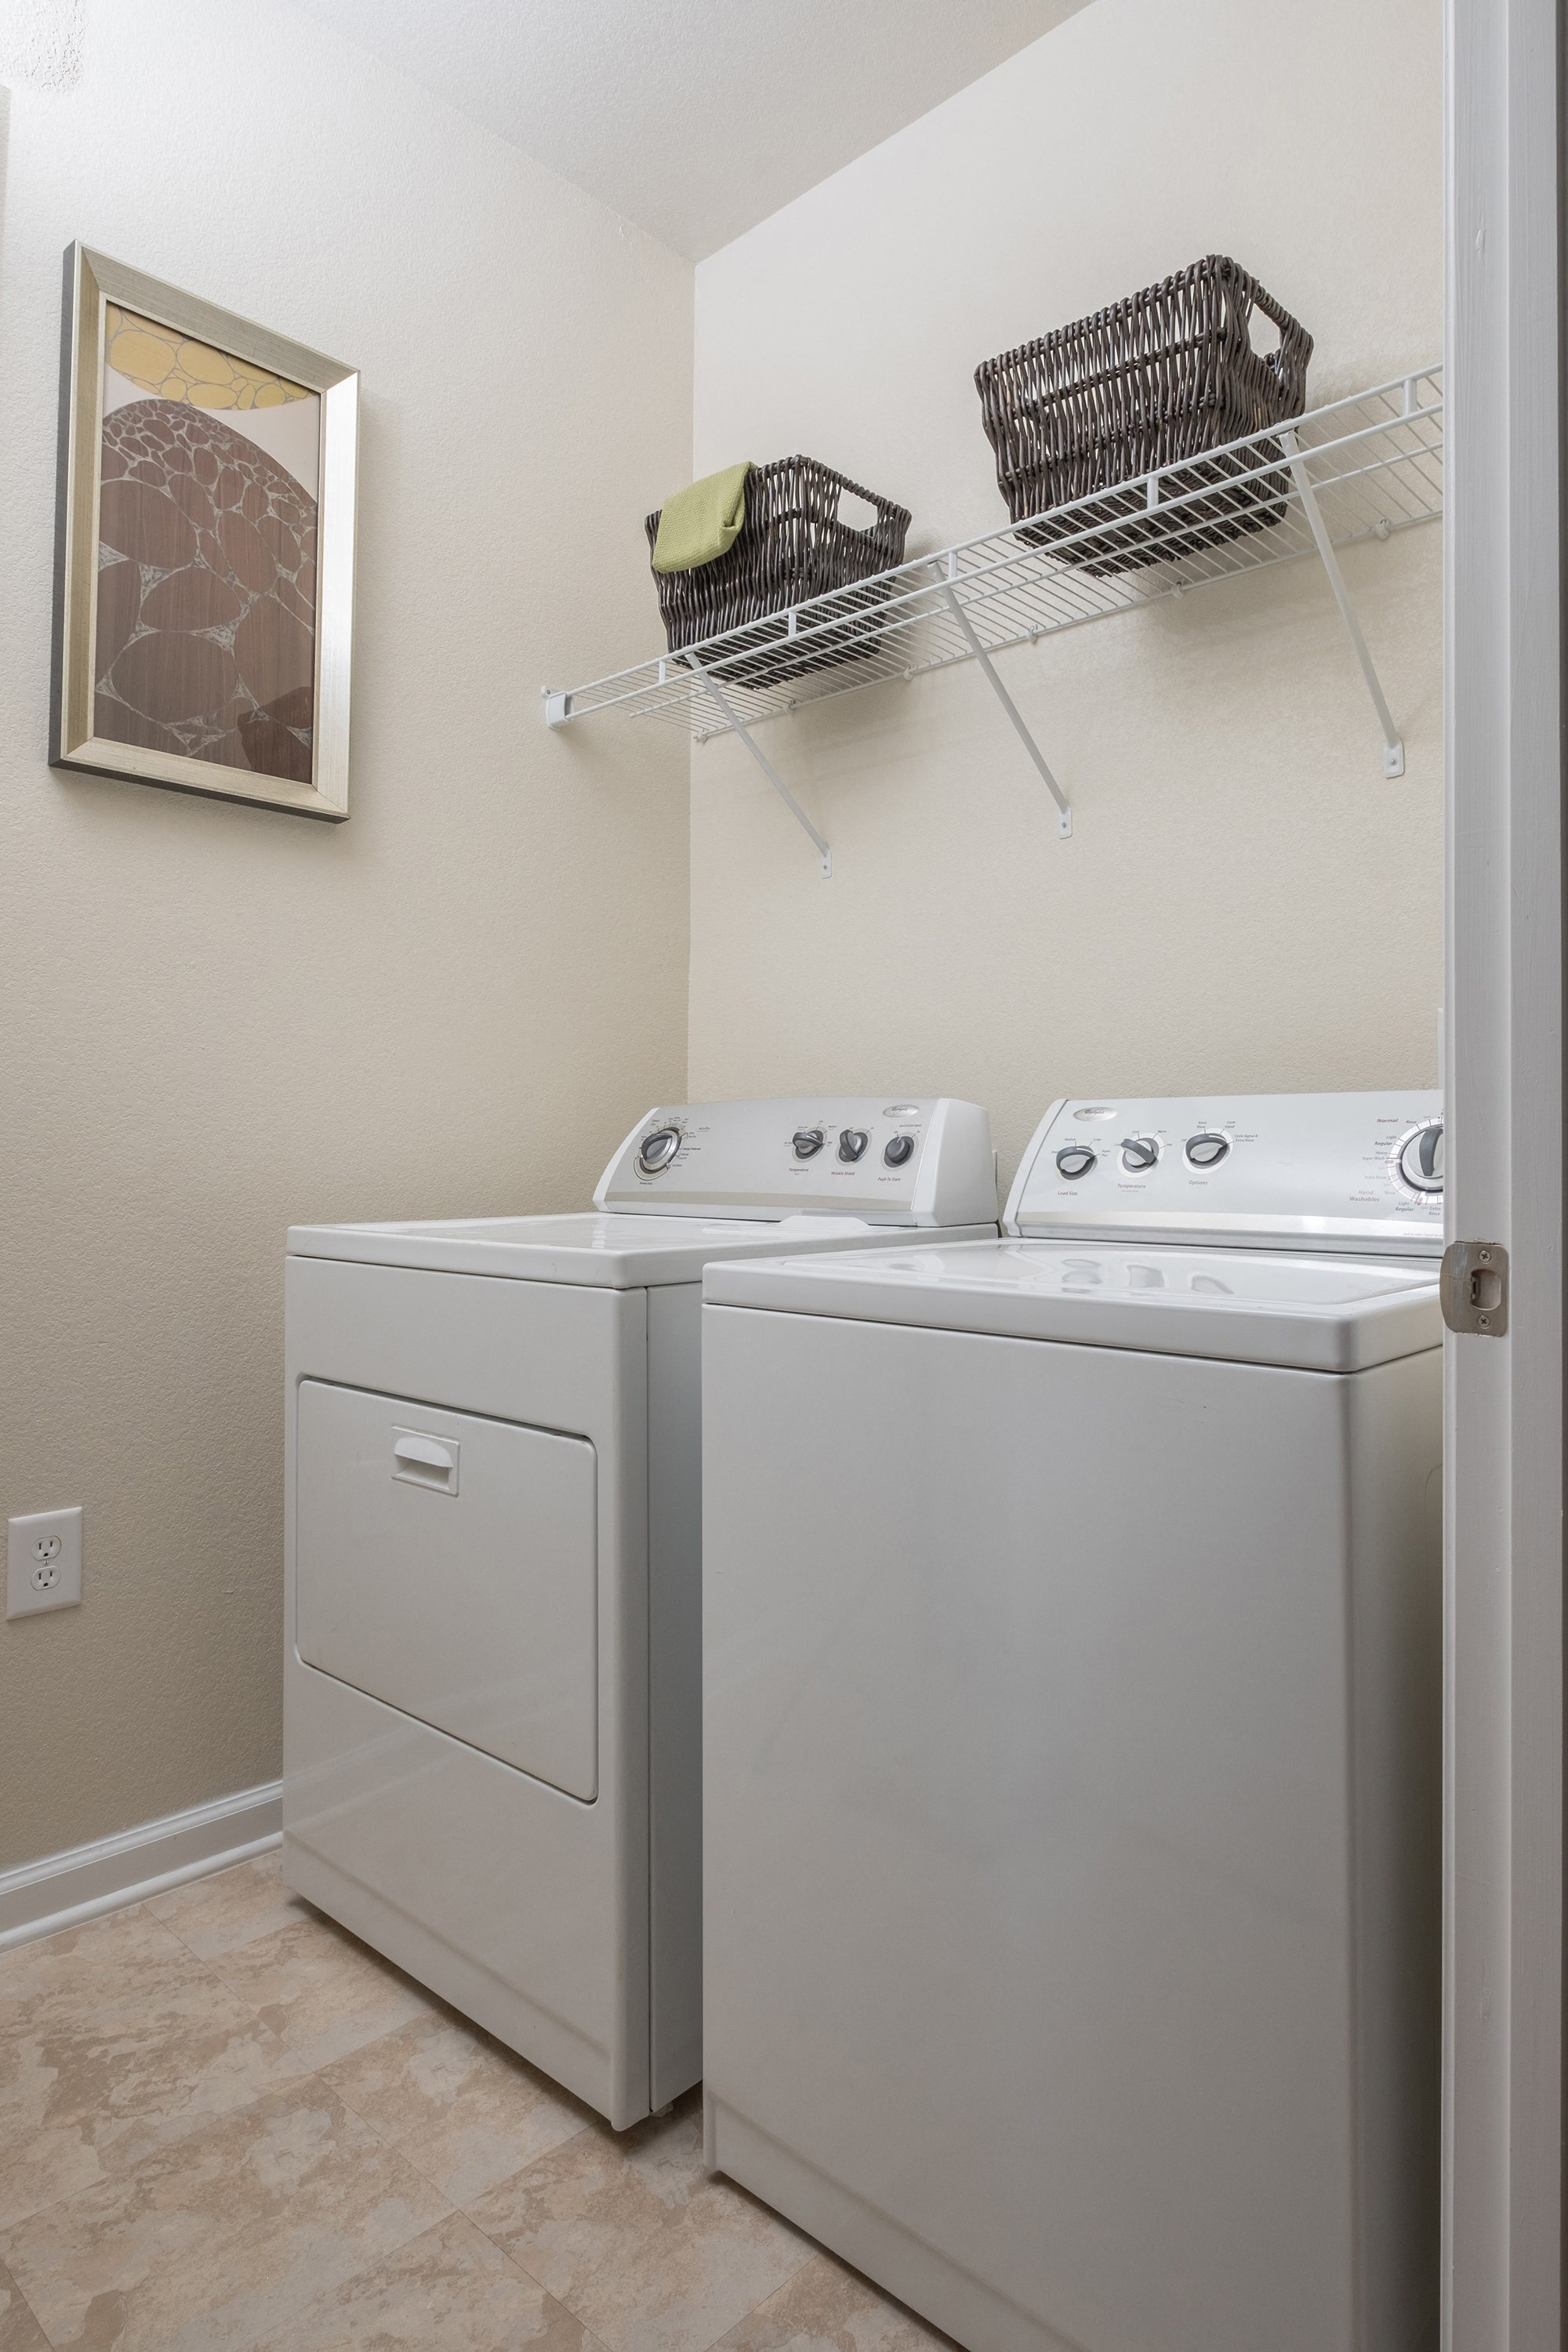 Laundry Room at View at Legacy Oaks Apartments in Knightdale, NC